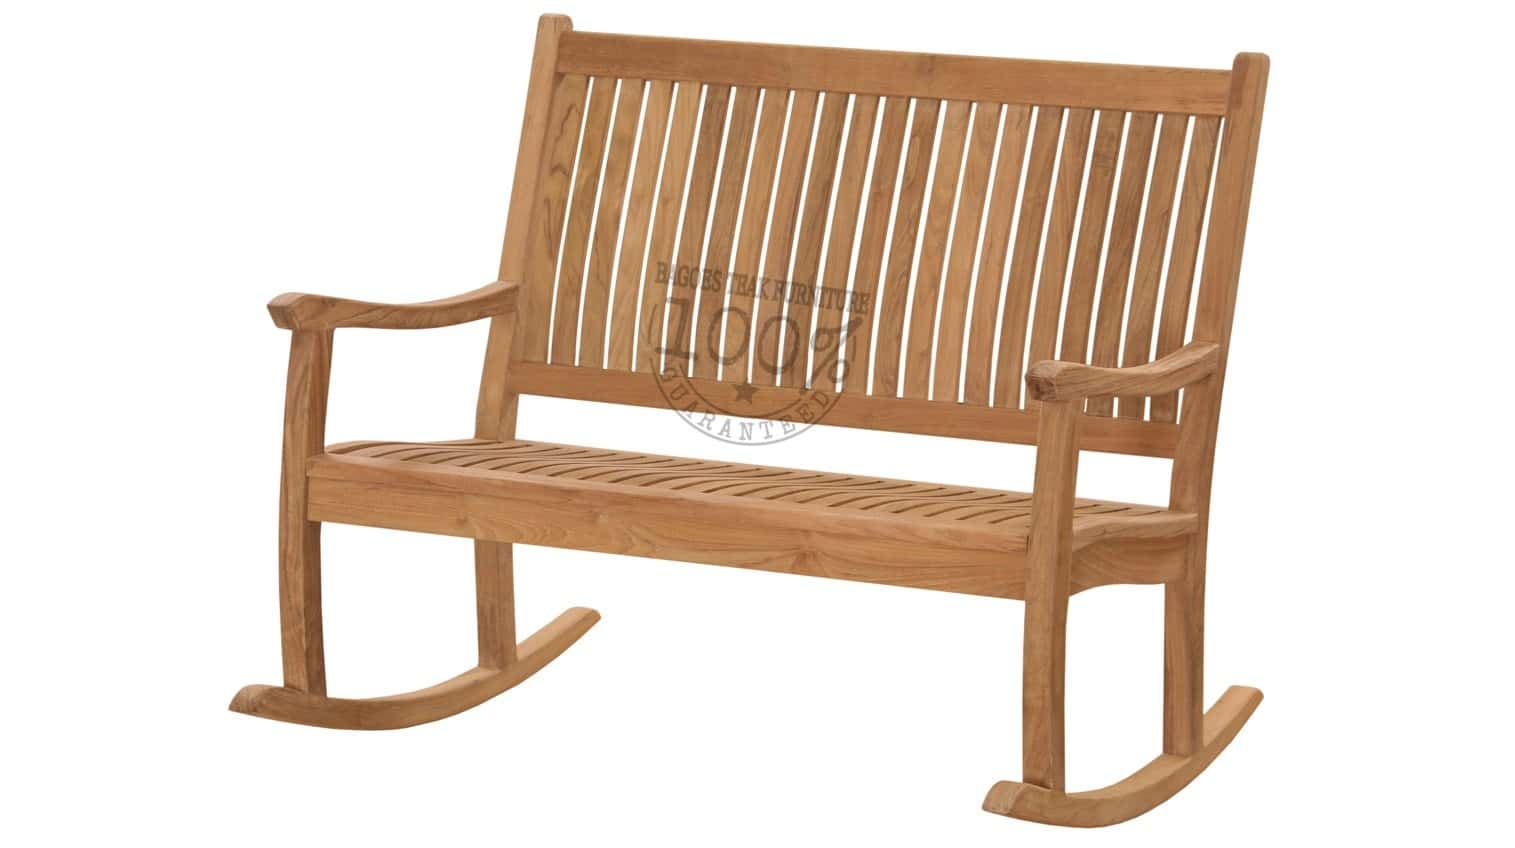 BB-032-ROCKING-TEAK-BENCH-KINTAMANI-117CM